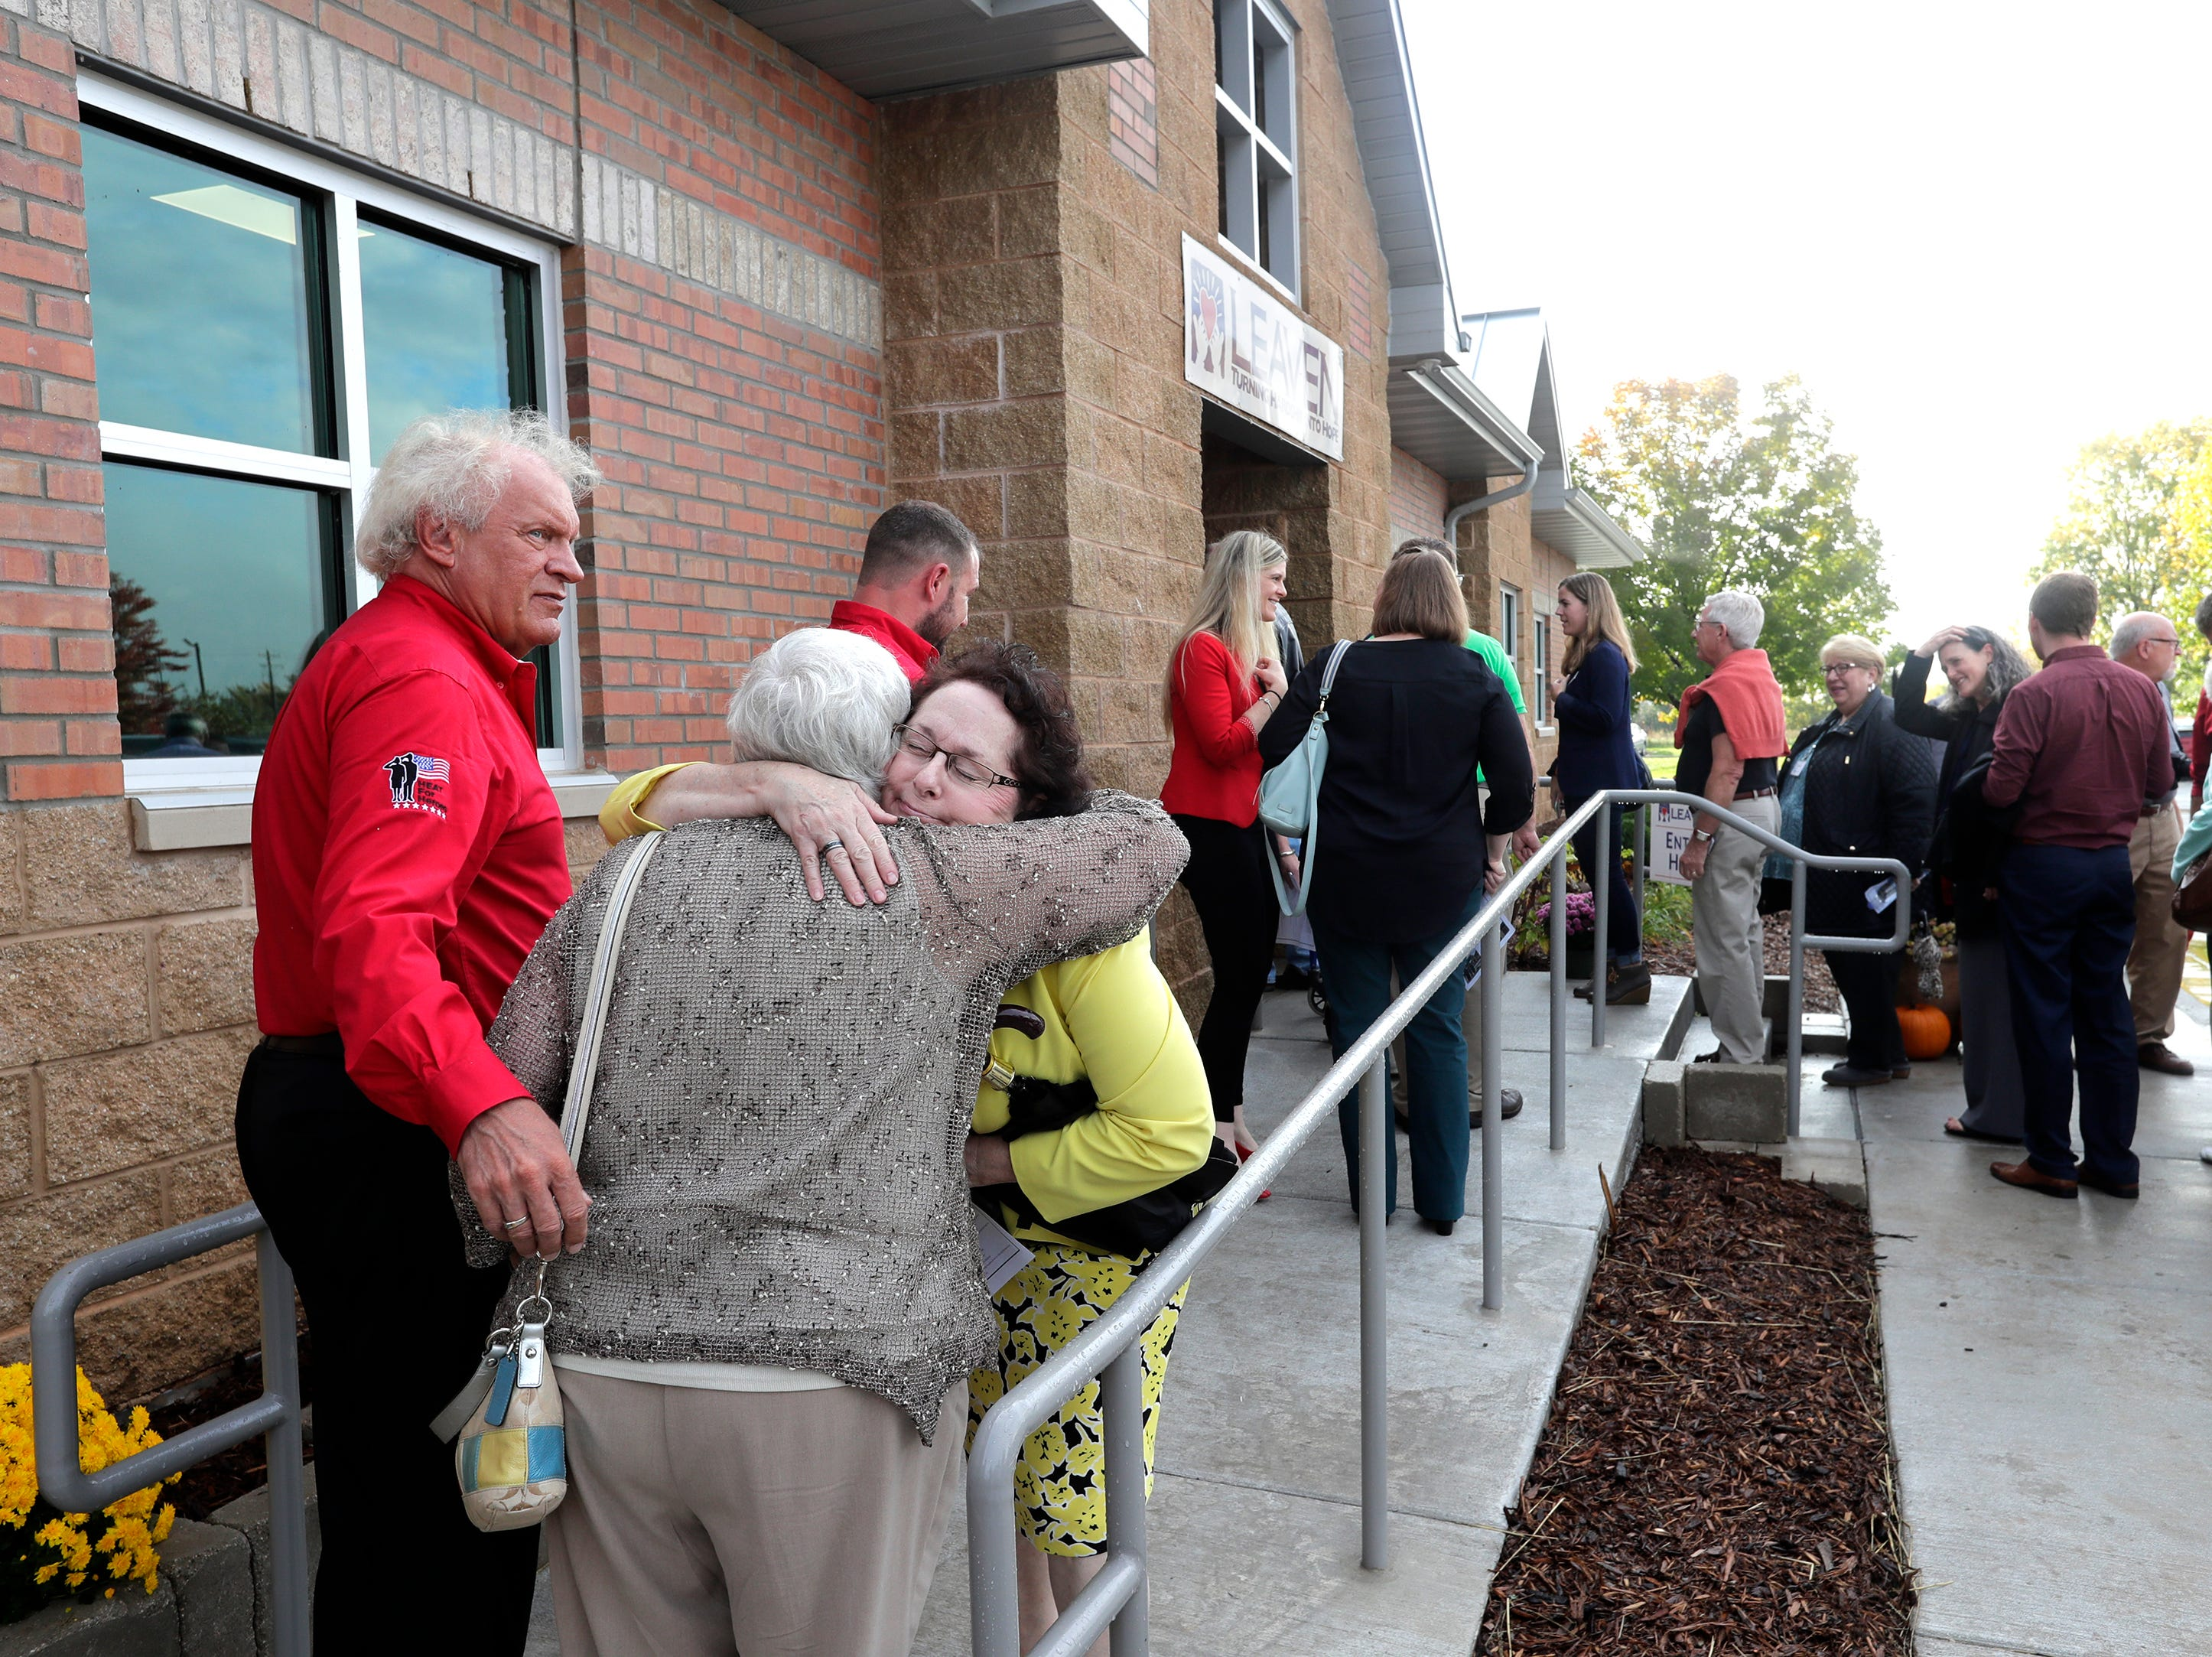 Attendees line up for a tour following a ribbon cutting event for the grand opening of the new LEAVEN Community Resource Center Wednesday, Oct. 10, 2018, in Menasha, Wis. LEAVEN or Limited Emergency Assistance Valley Ecumenical Network provides emergency financial assistance to people in need.